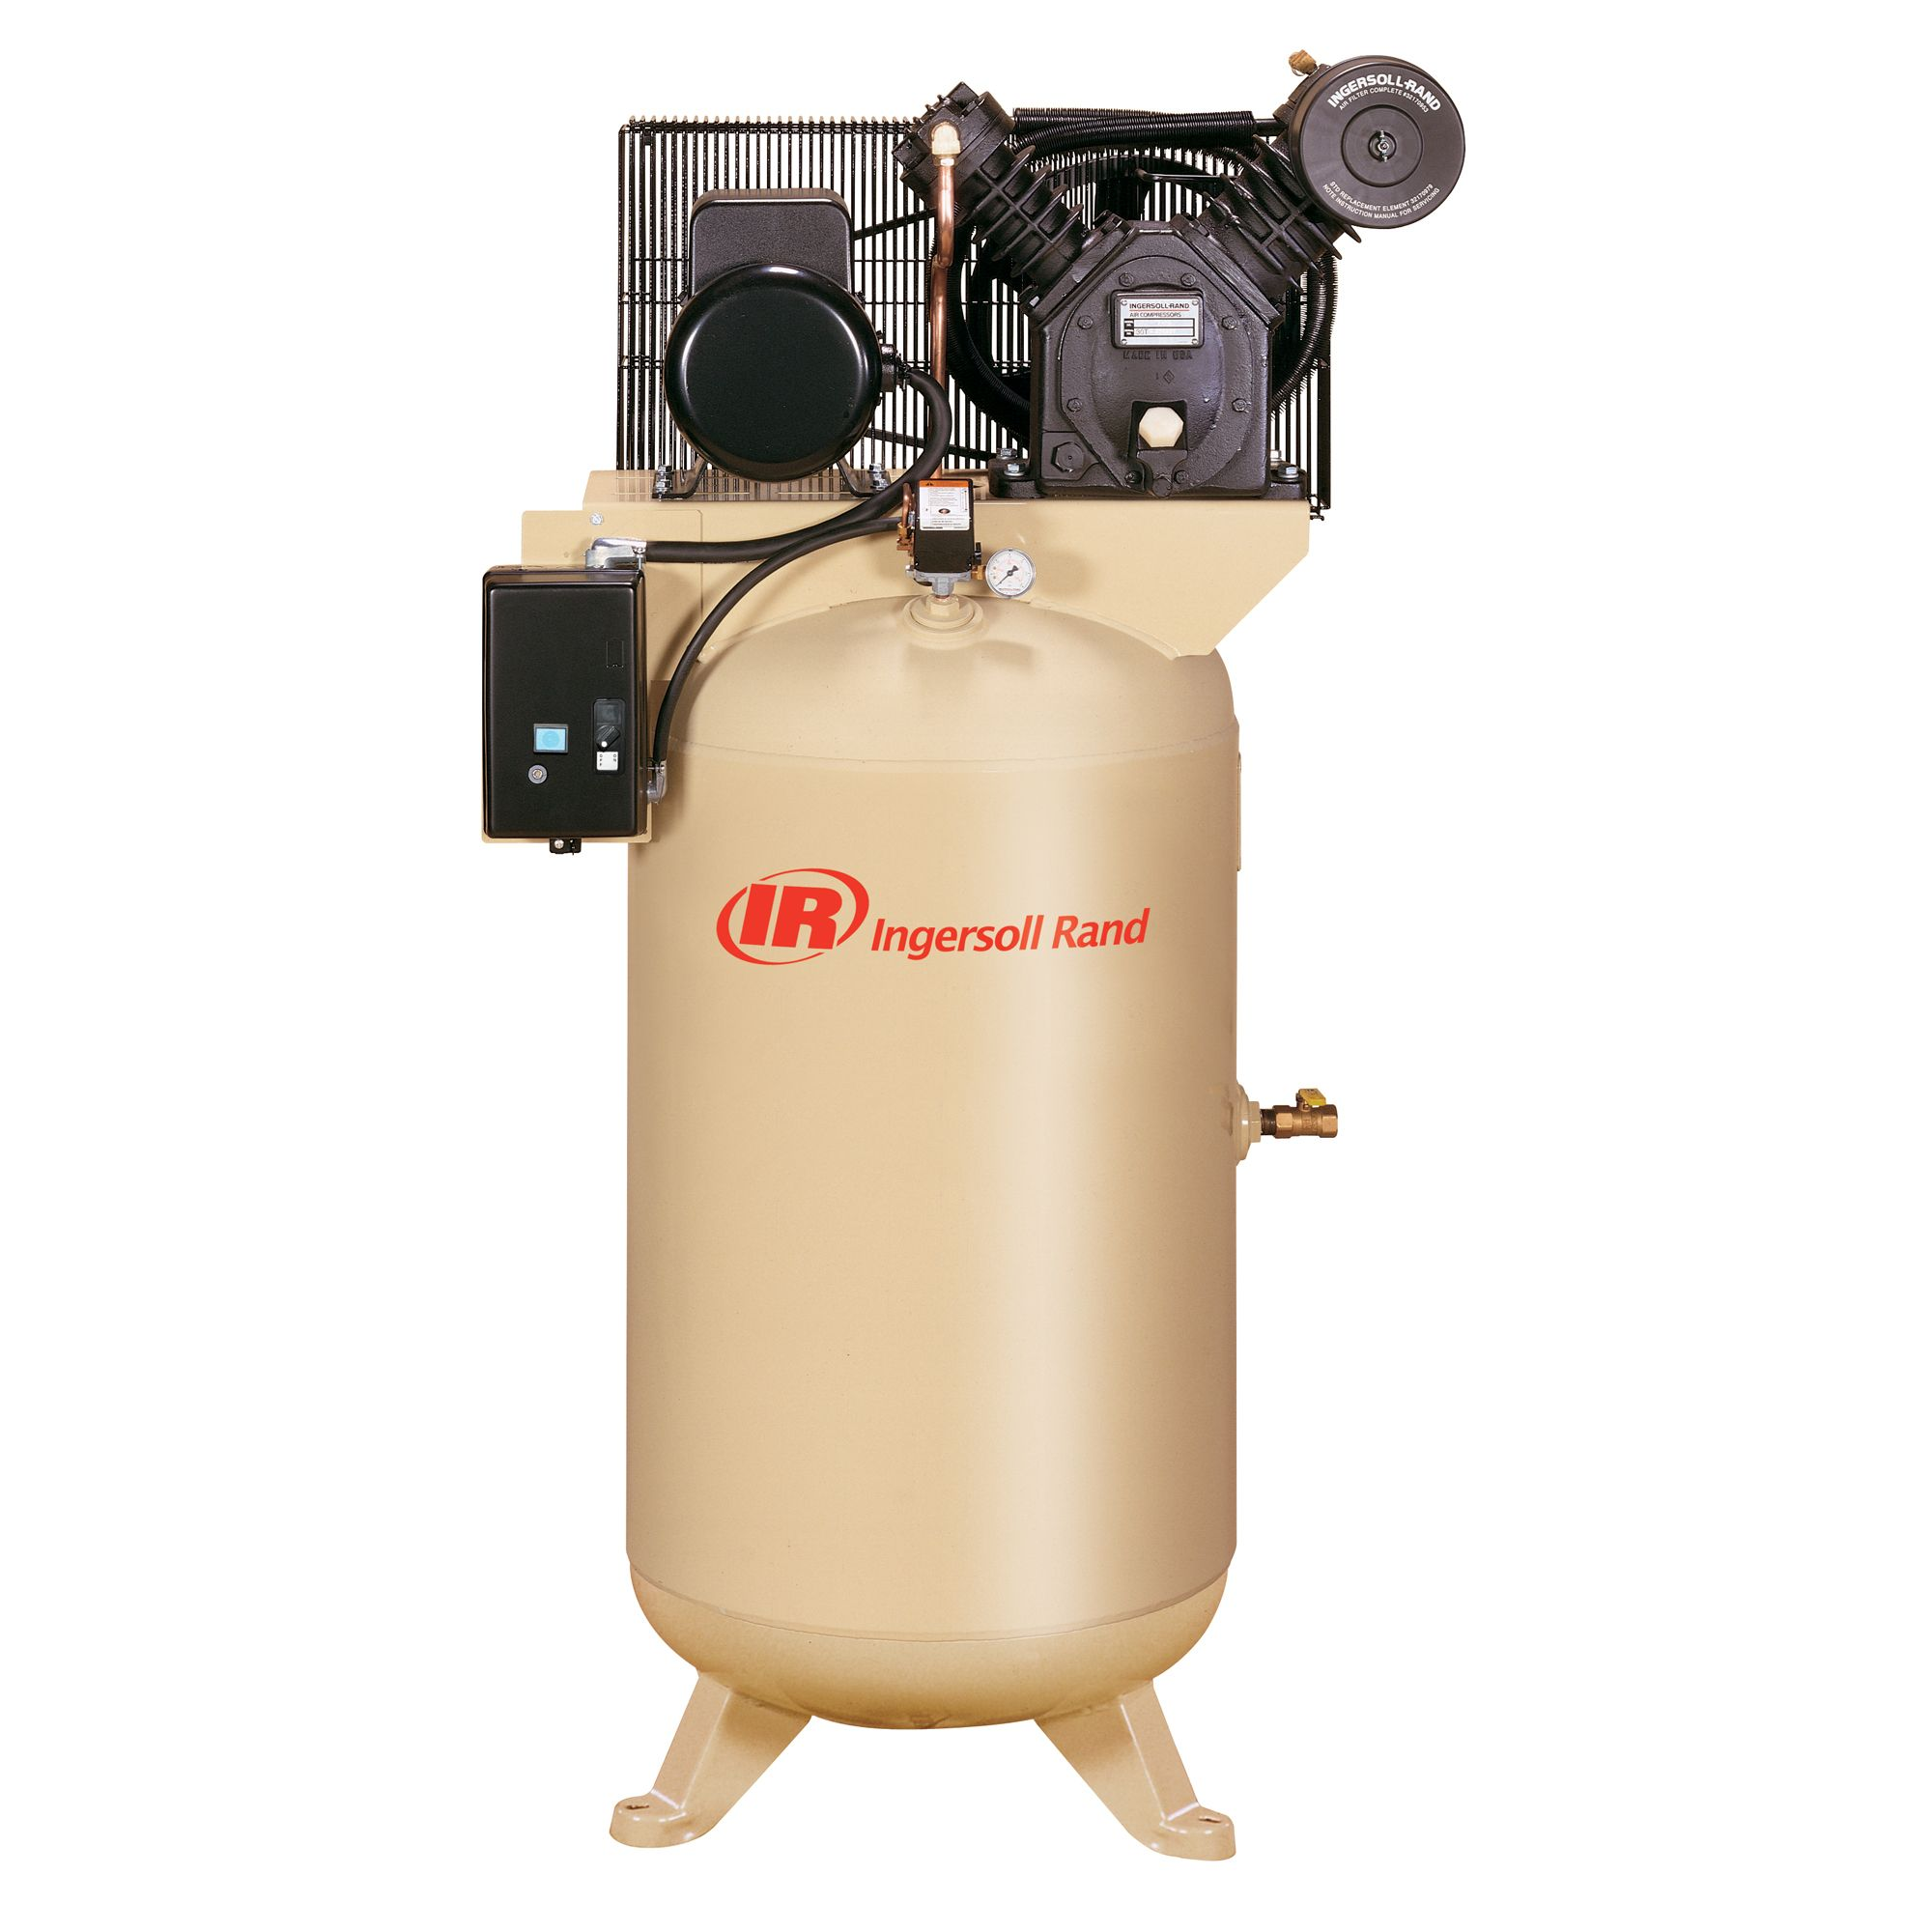 Ingersoll Rand Small Reciprocating Air Compressors